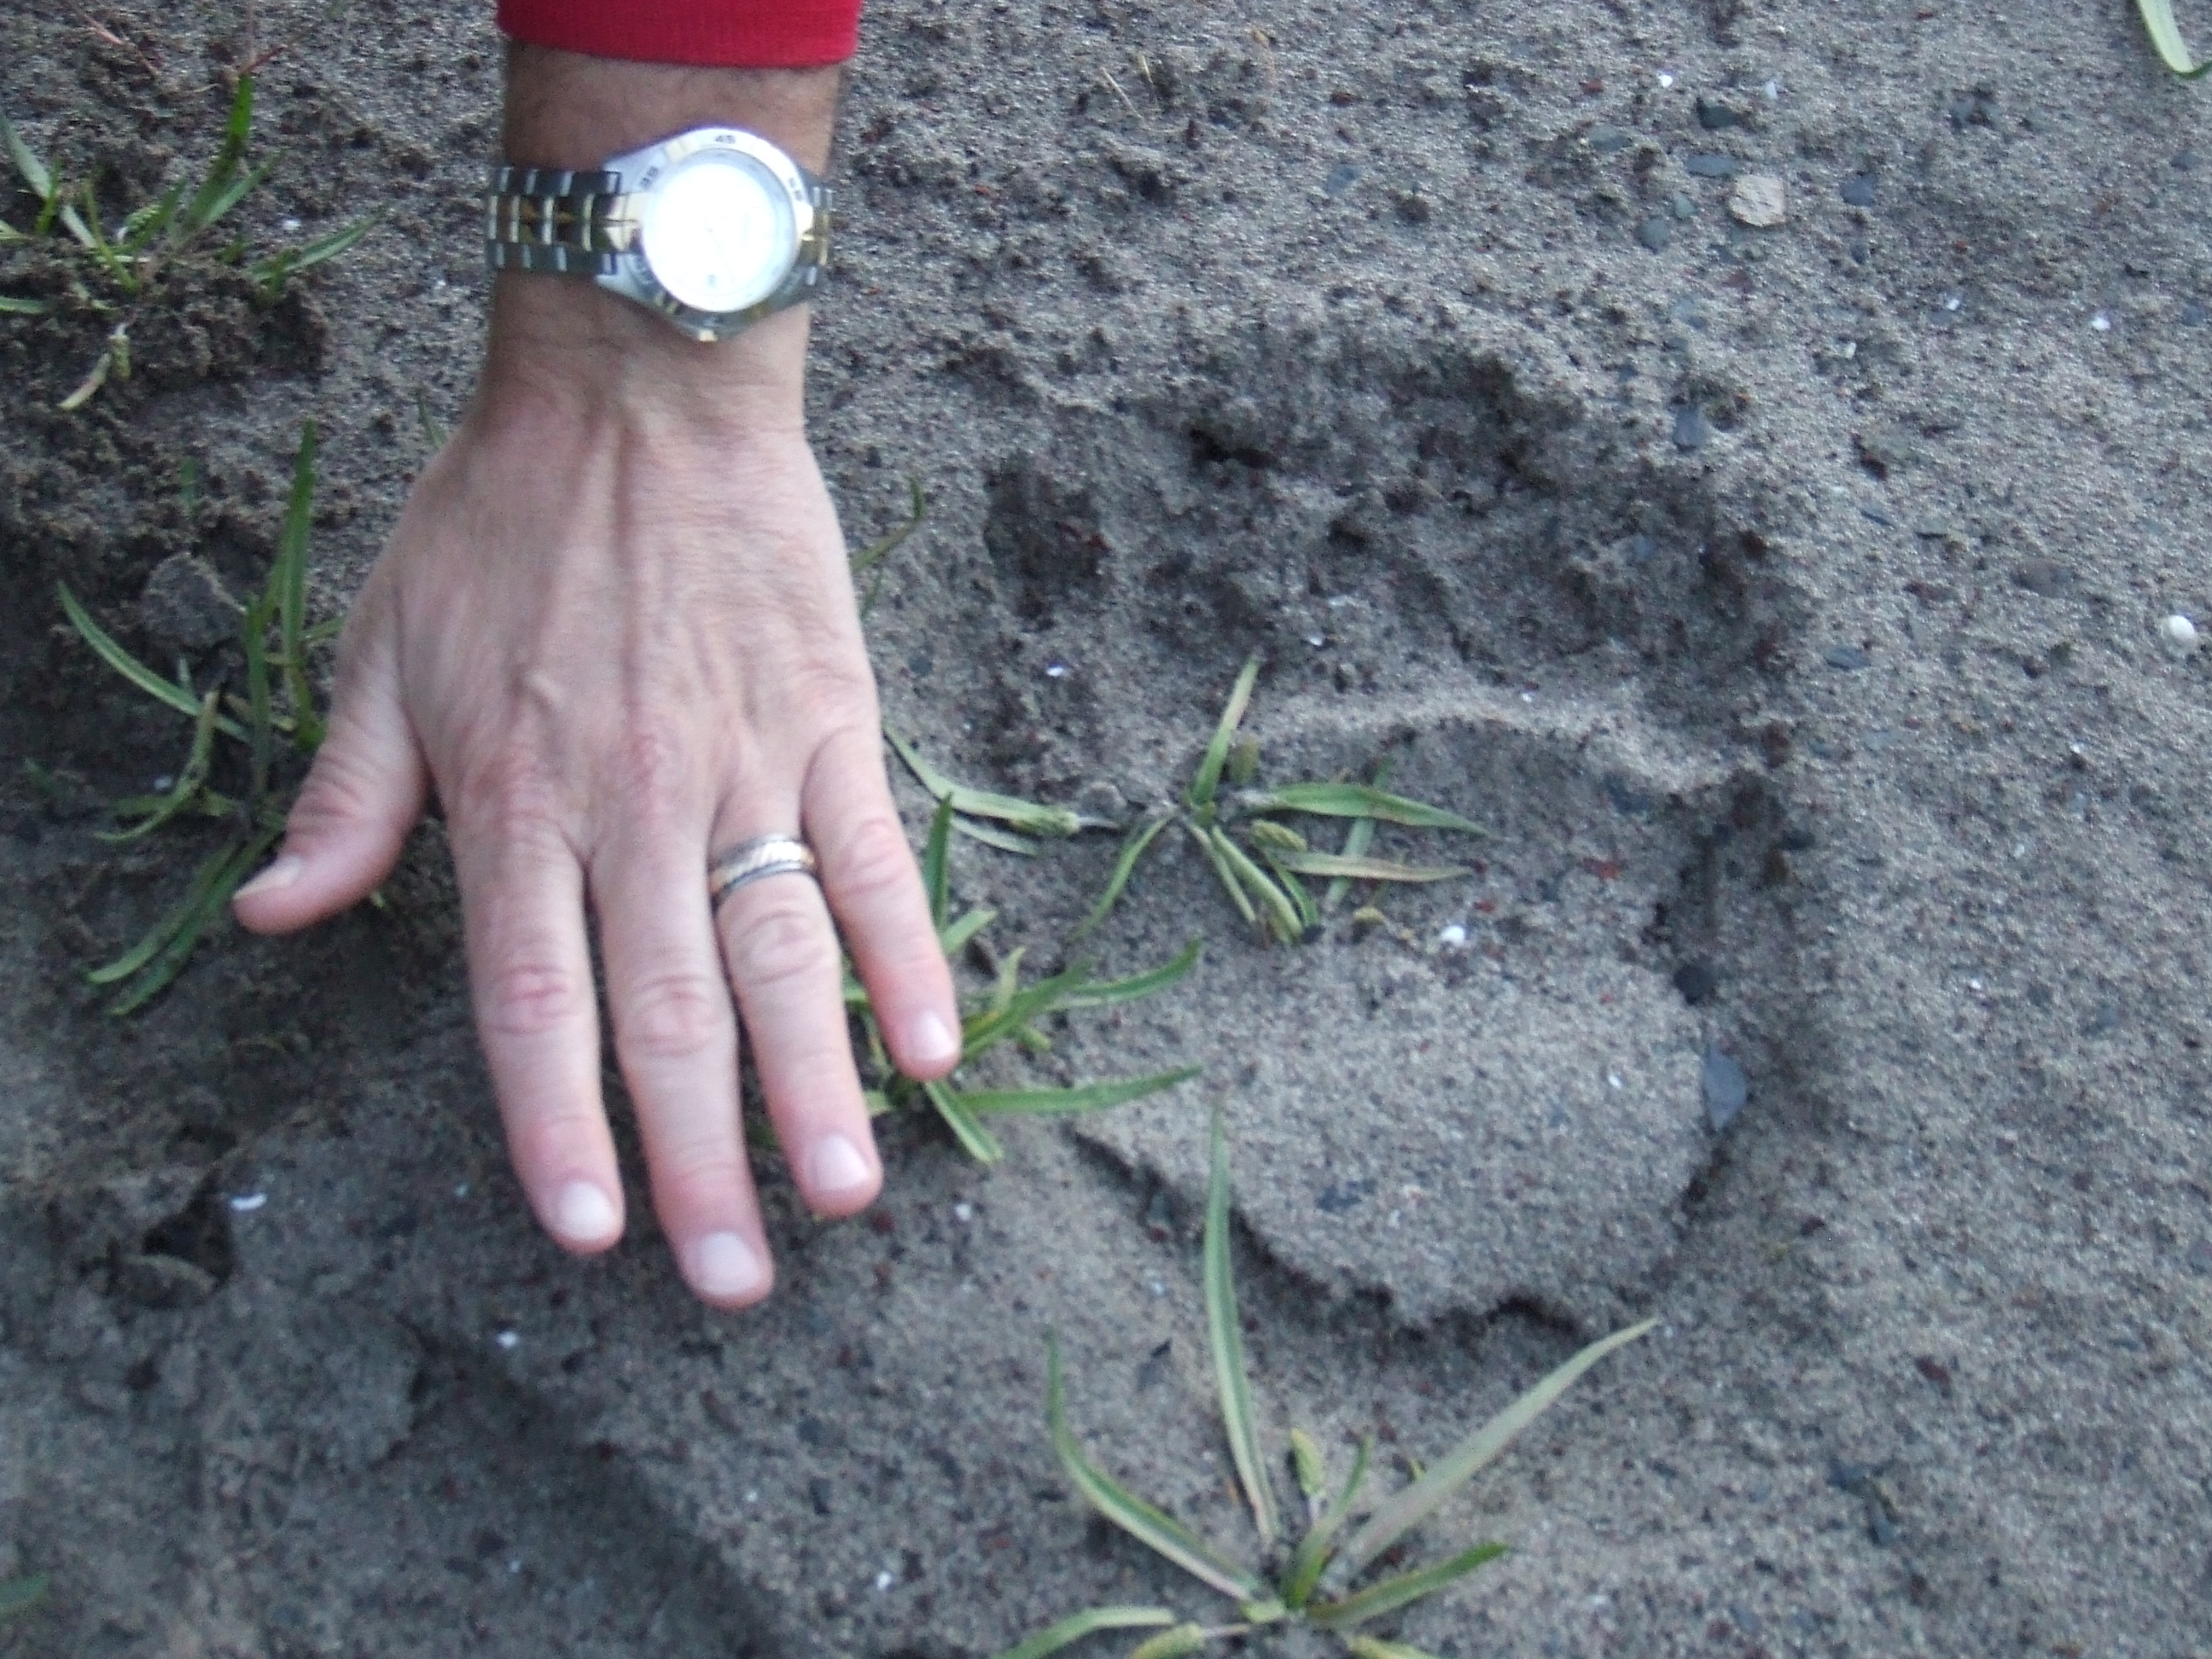 Bear paw print in the sand